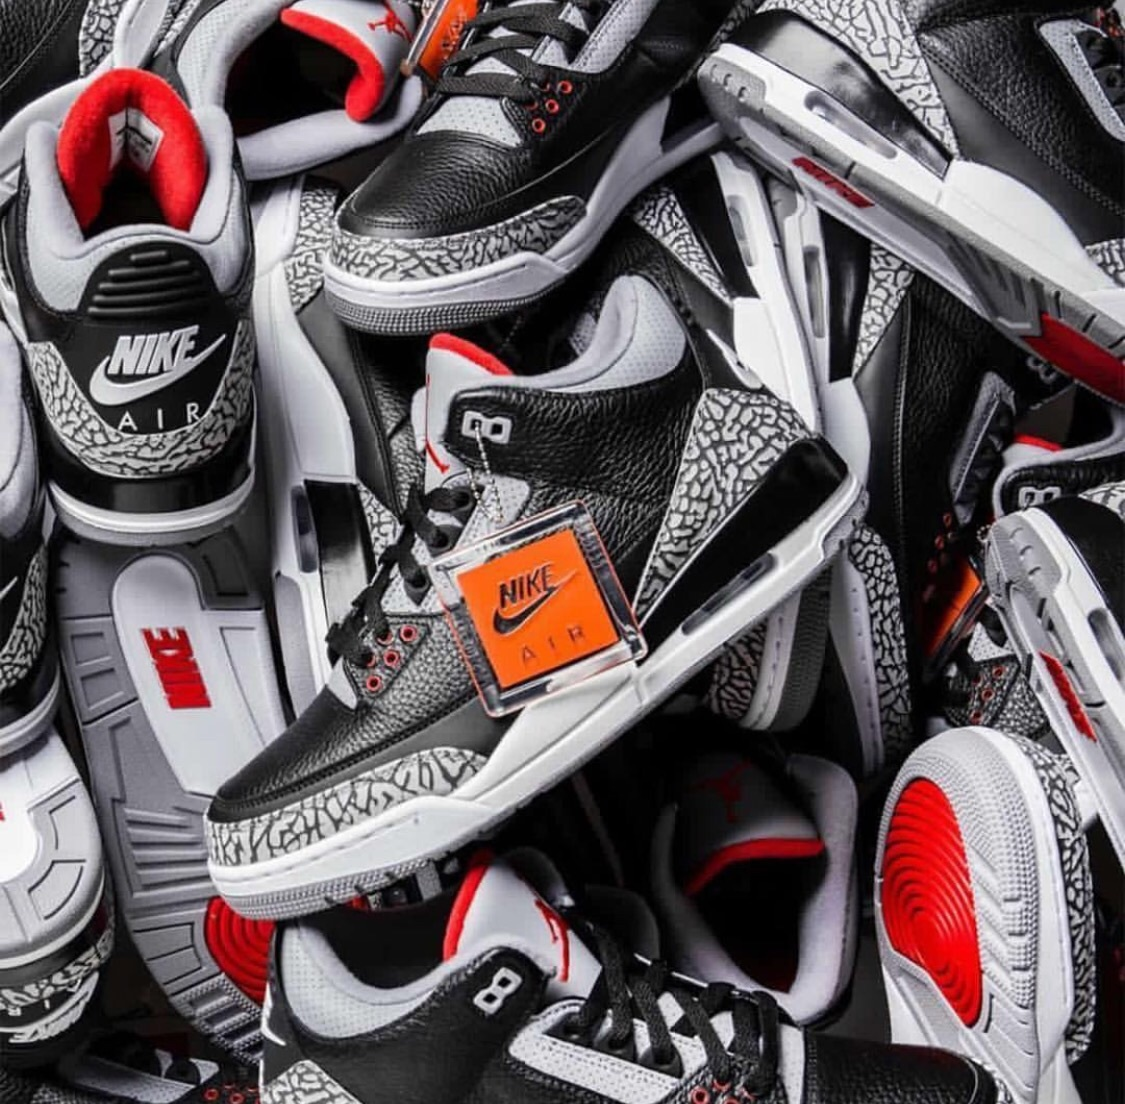 53d529c4d754ed Nike Air Jordan 3 Retro OG Black Cement – SNEAKER BOX MANILA